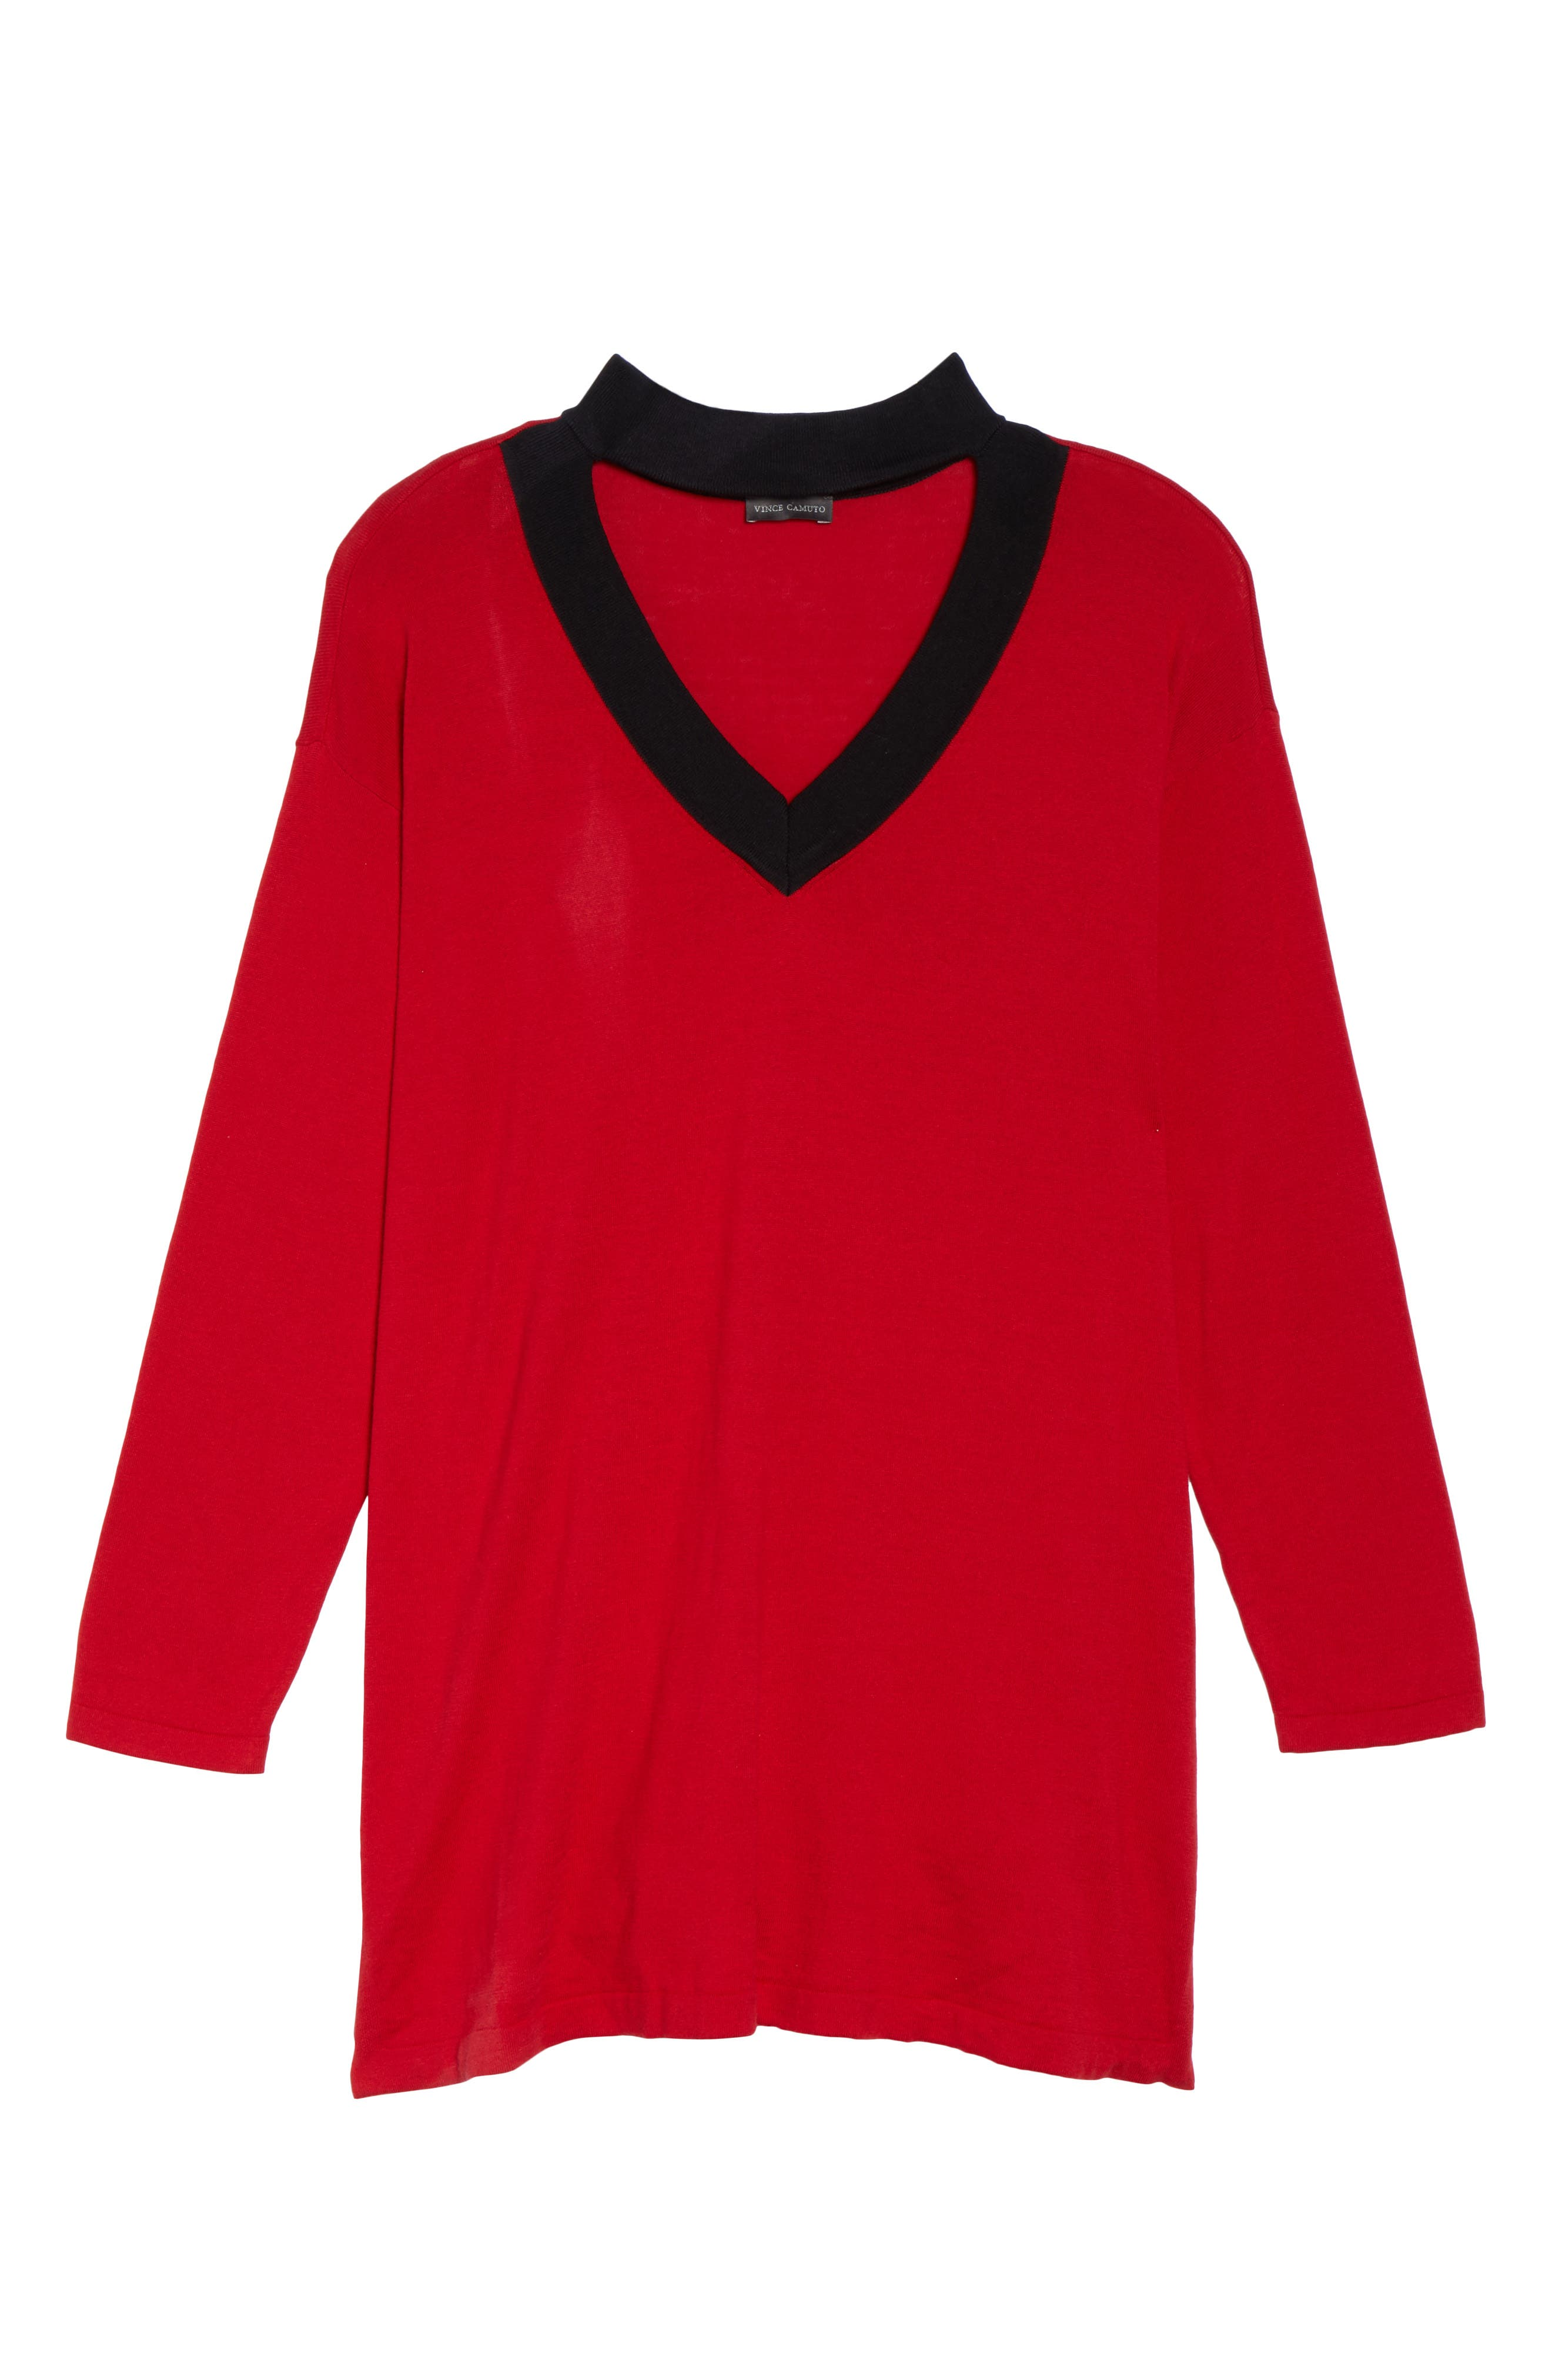 Main Image - Vince Camuto Choker Neck Sweater (Plus Size)